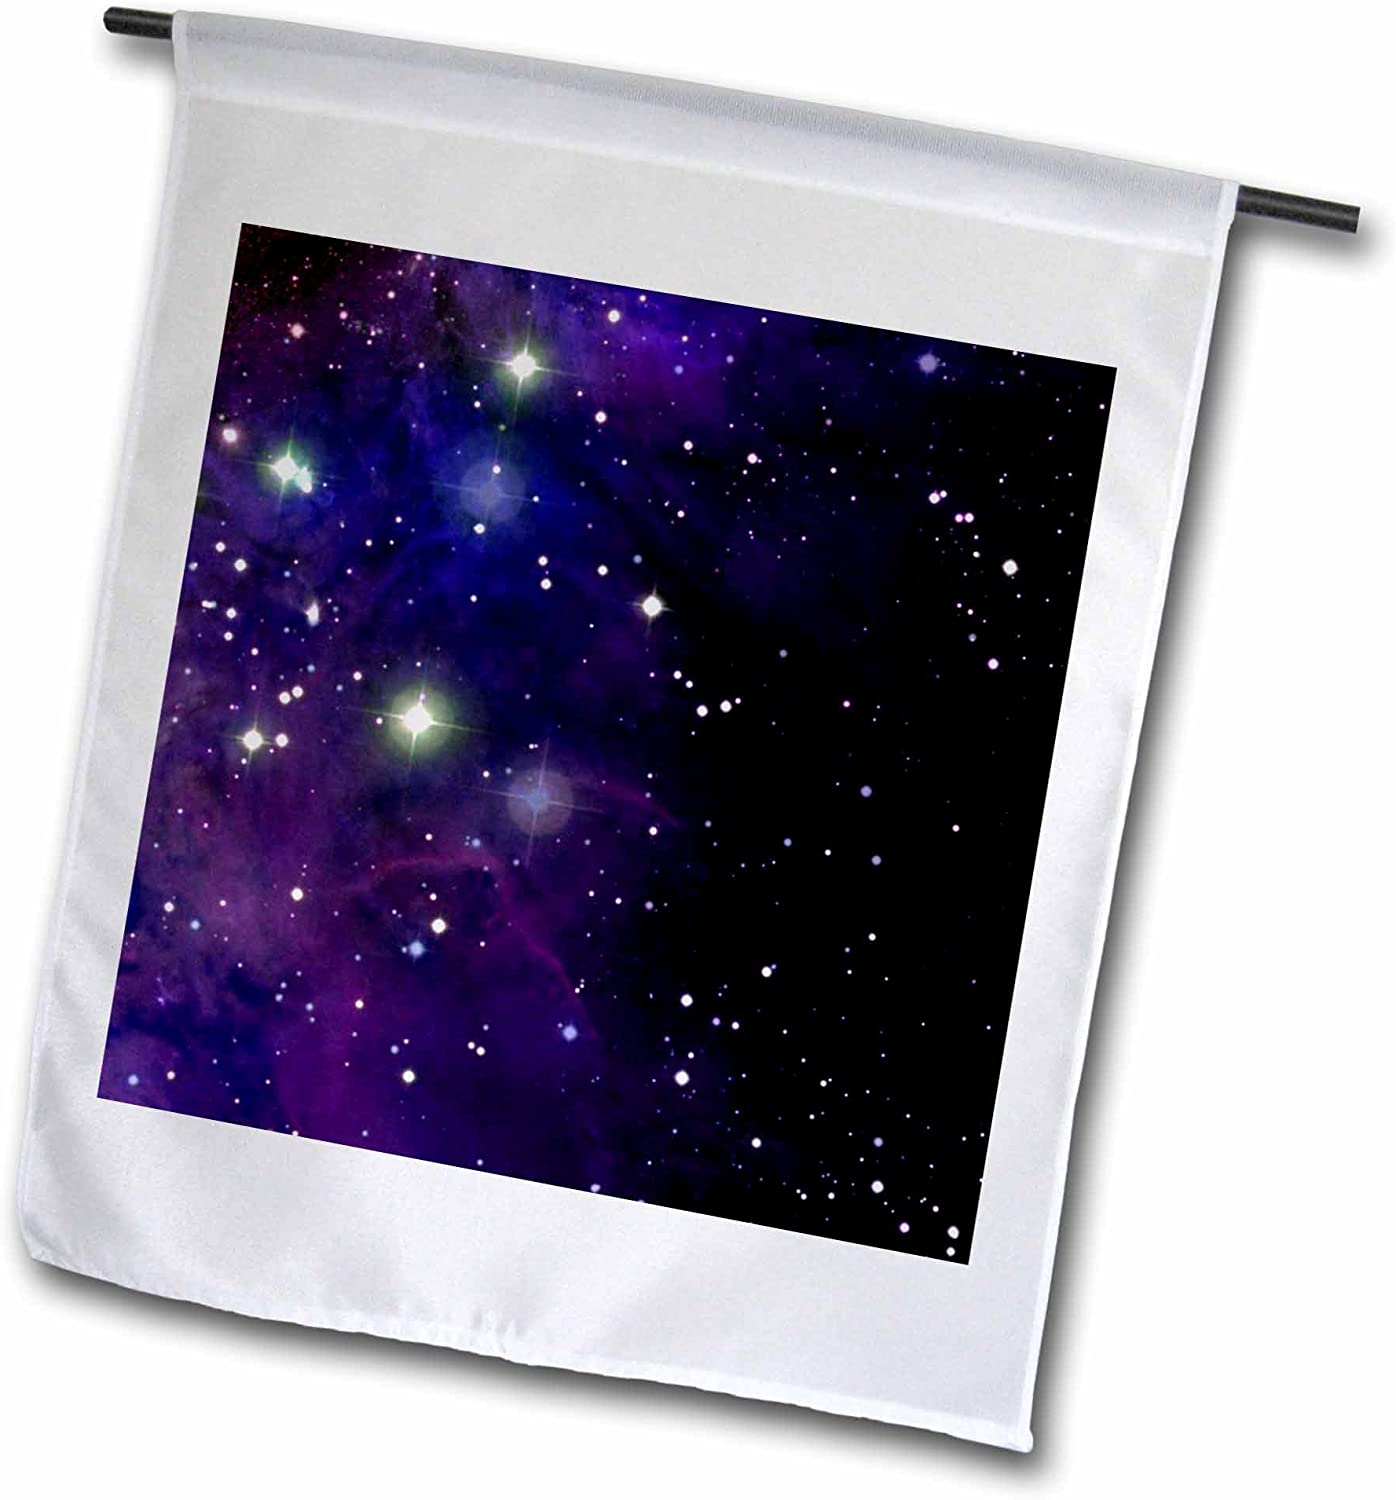 3dRose fl_112991_1 Garden Flag, 12 by 18-Inch, Twinkling Stars in Outer Space Photography-Astronaut Midnight Blue Shining Starry Night Sky